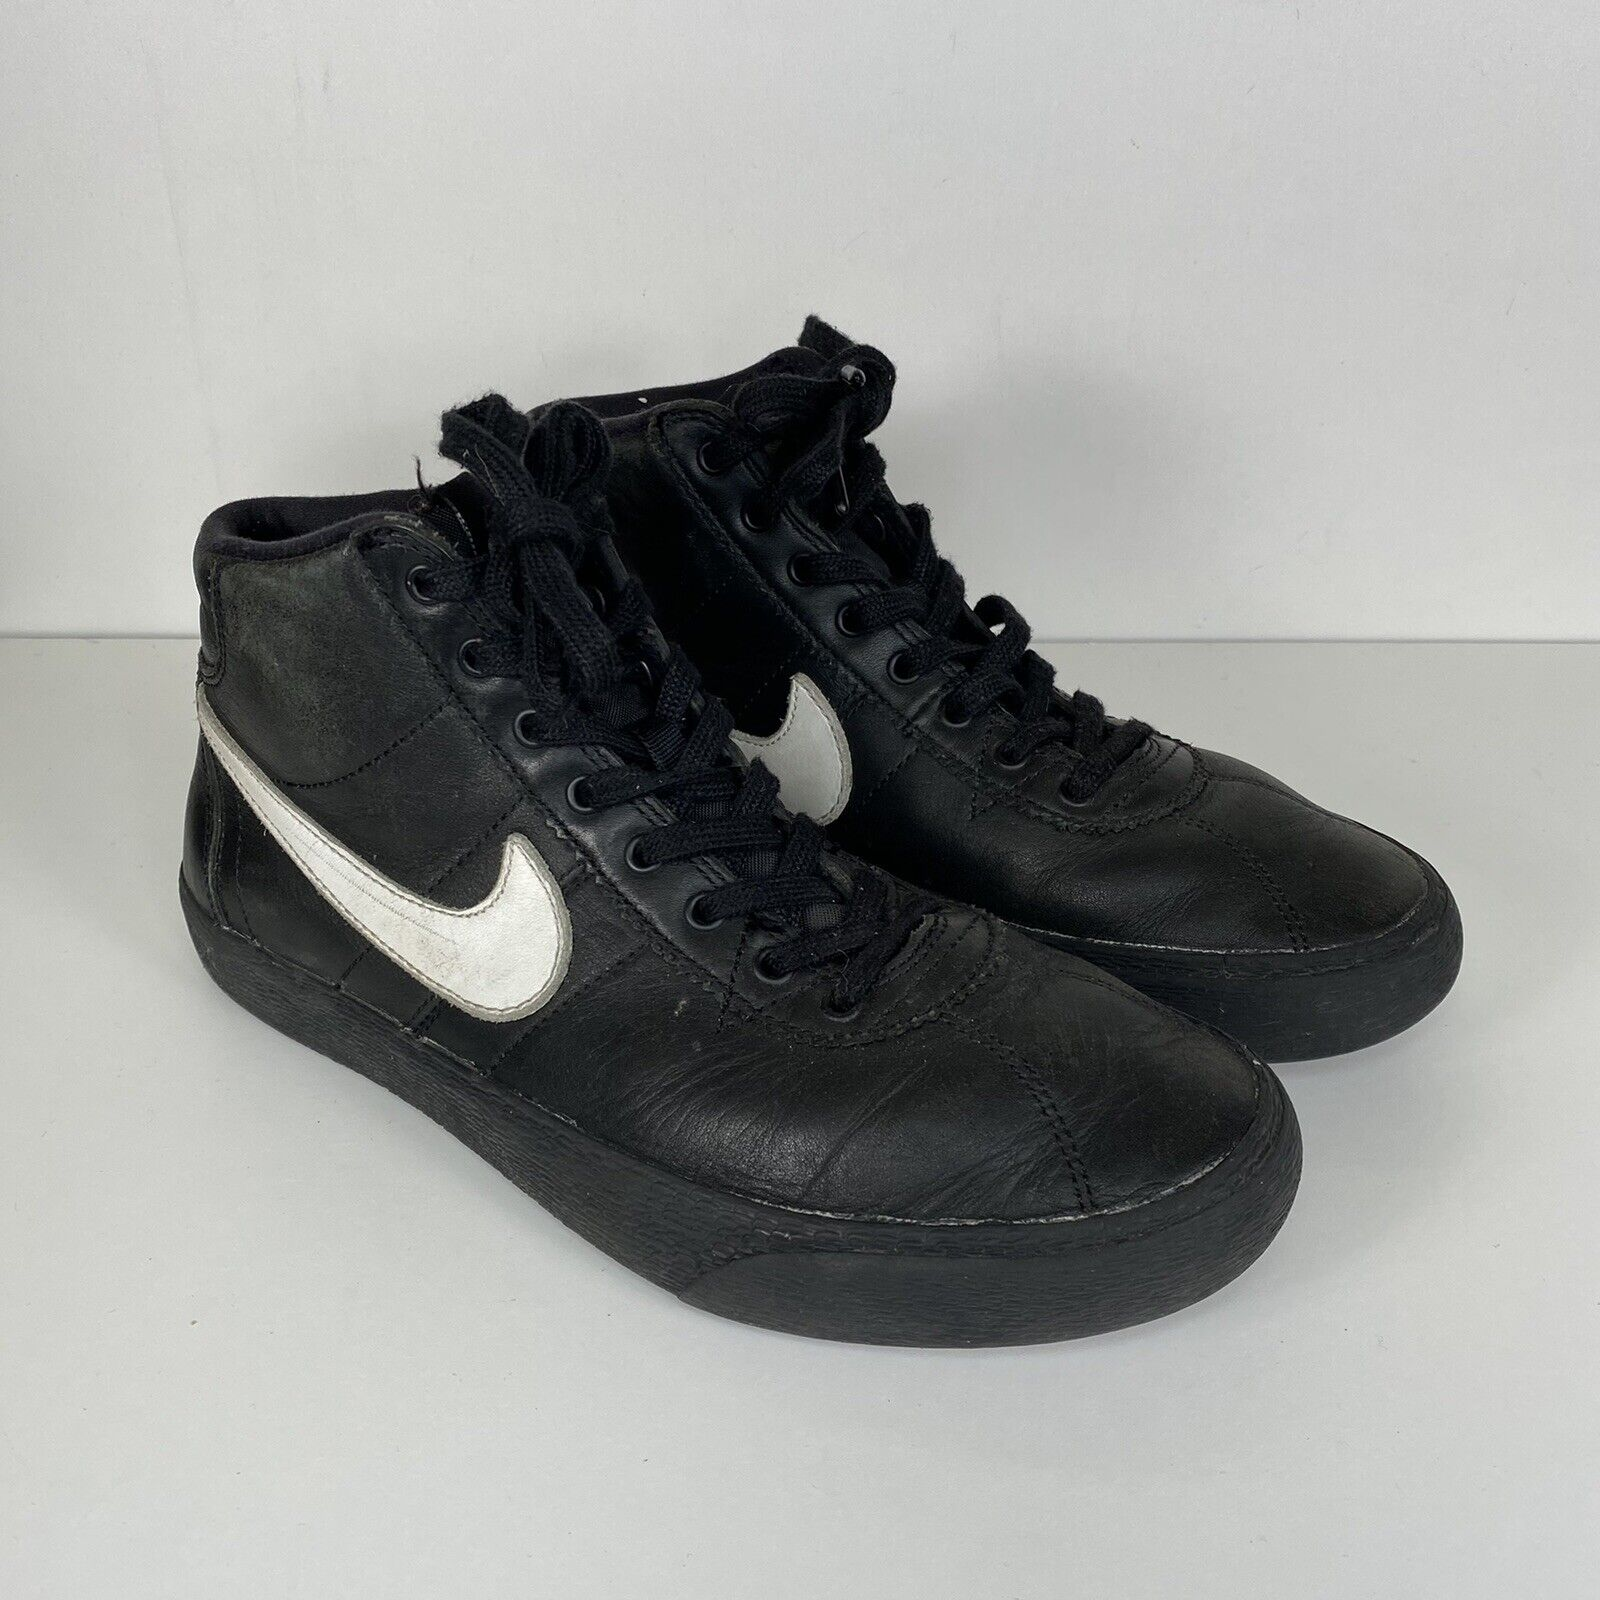 Size 6.5 - Nike SB Bruin High QS x Lacey Baker All Eyes on You ...